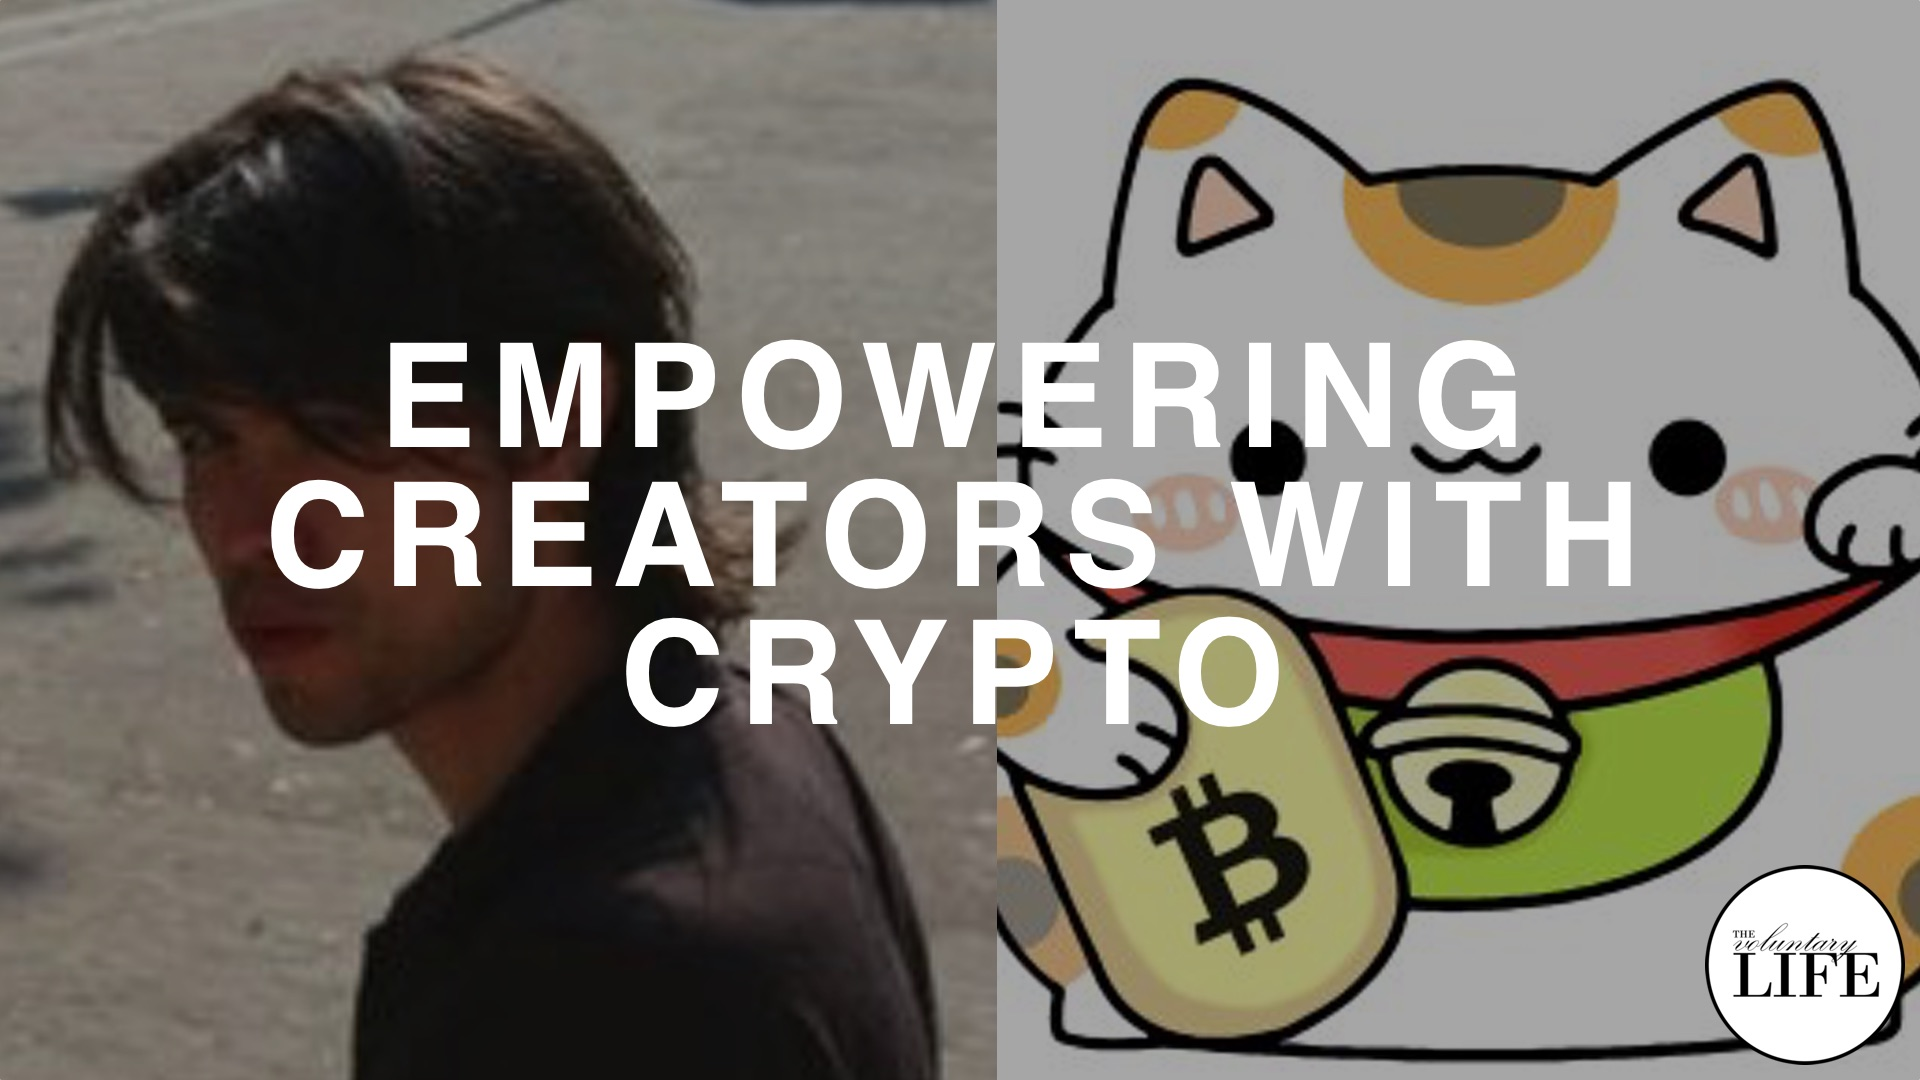 367 Empowering Creators With Cryptocurrency